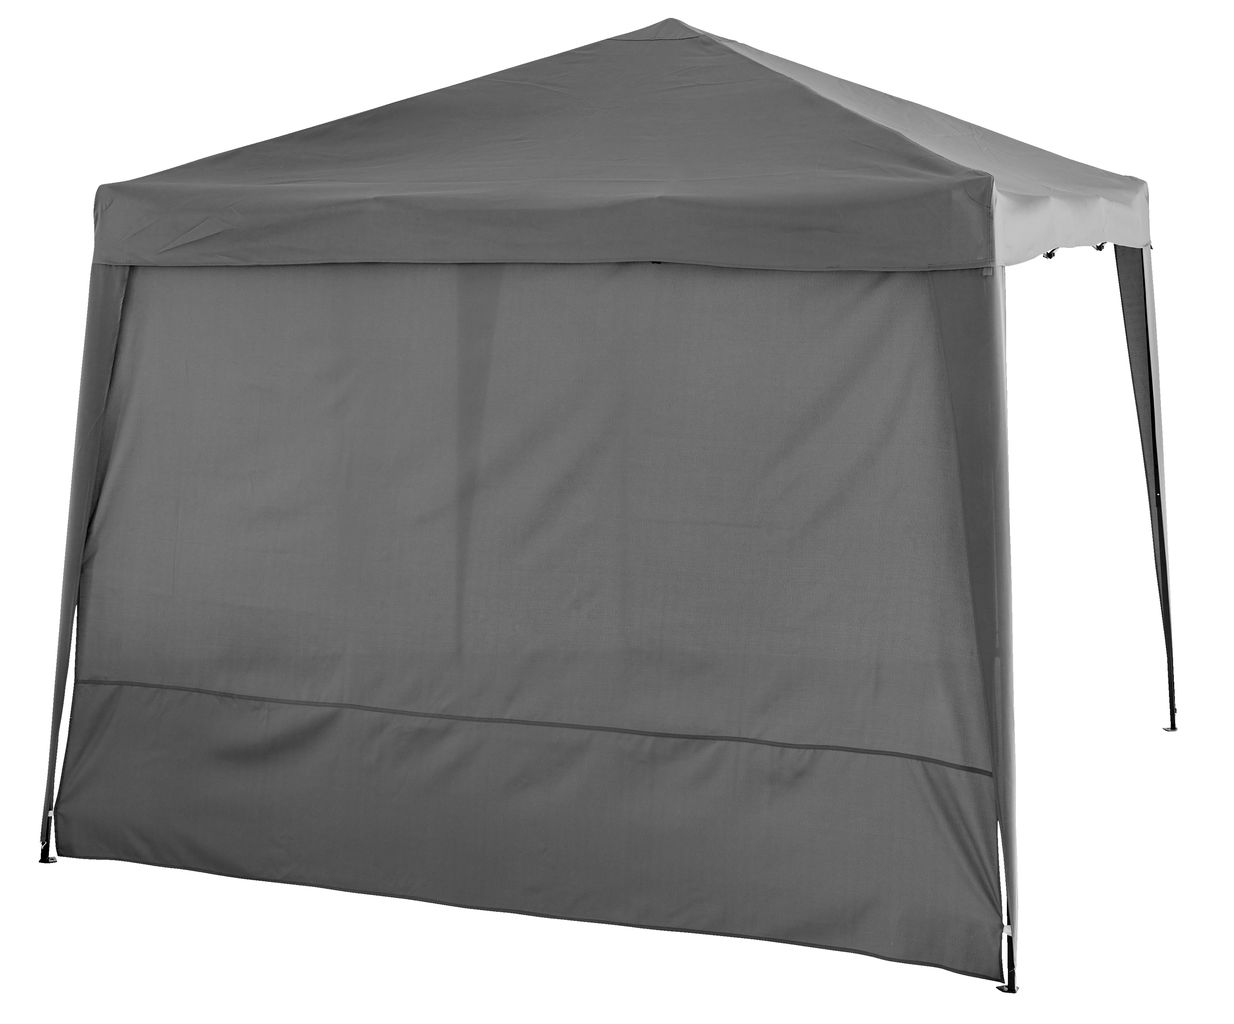 Jysk Tent Gazebo Side Jerup Grey